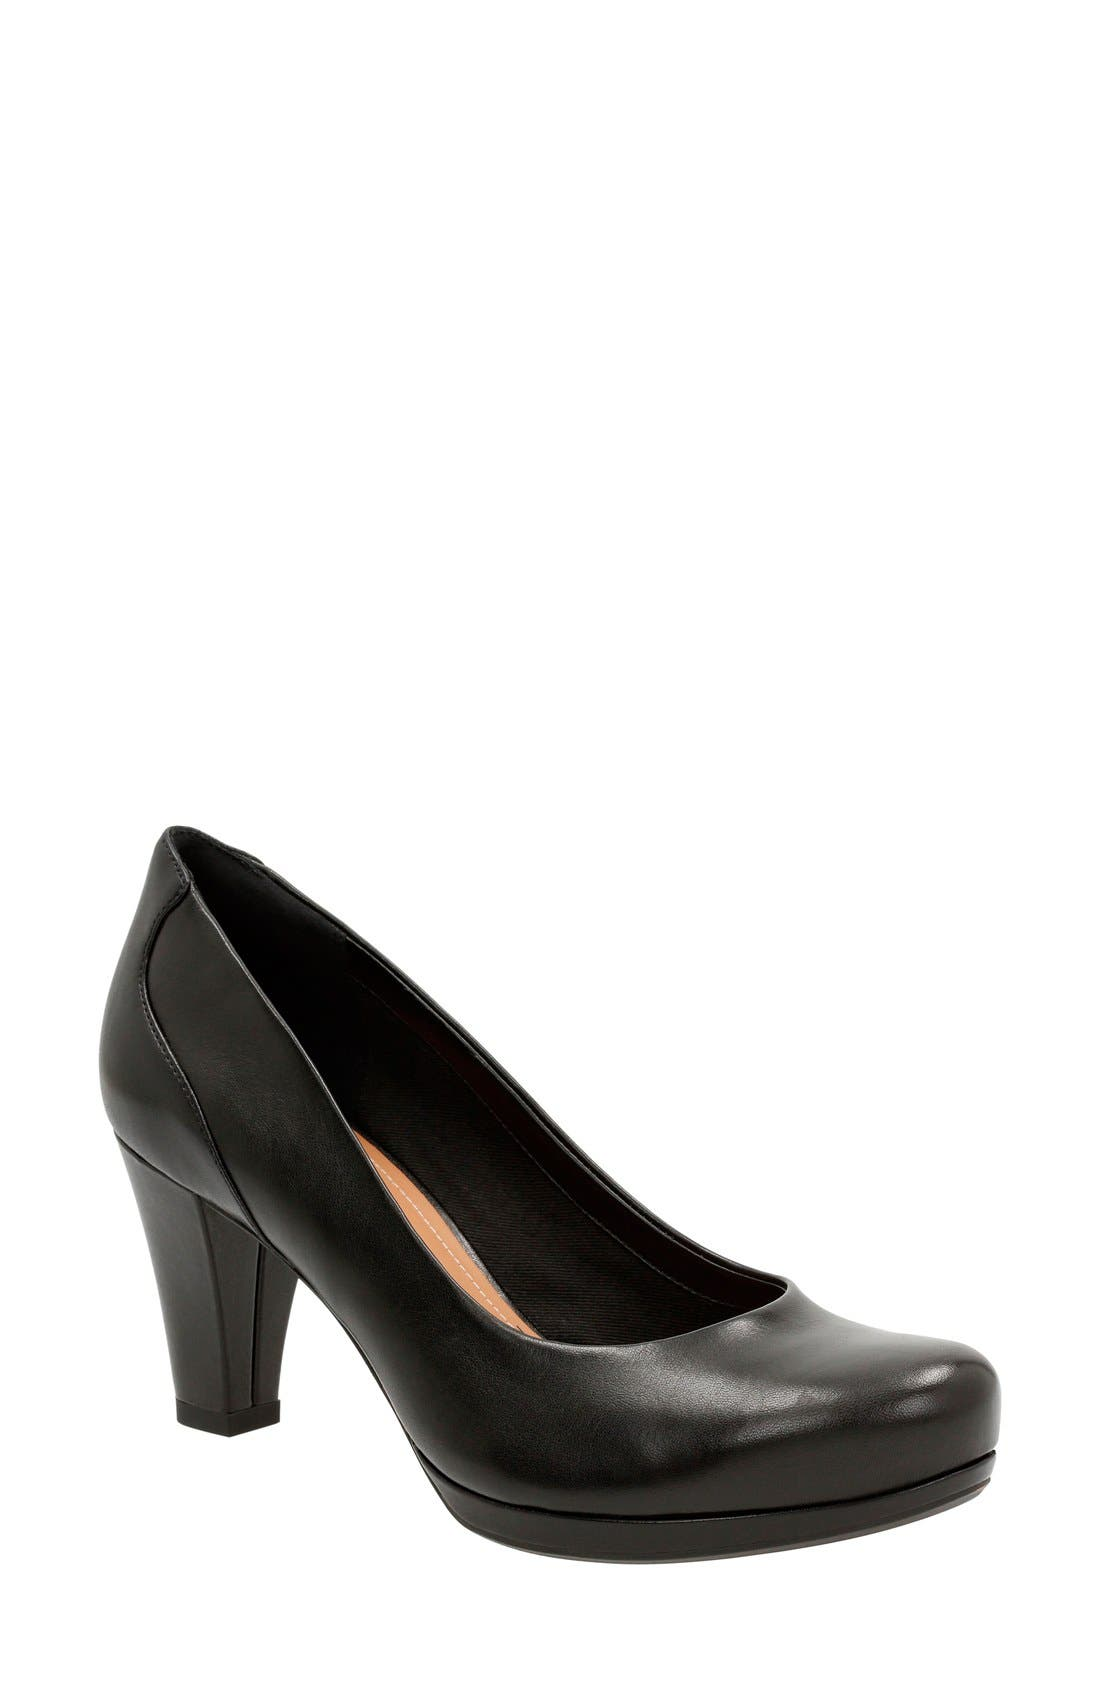 Main Image - Clarks® 'Chorus Chic' Round Toe Pump (Women)